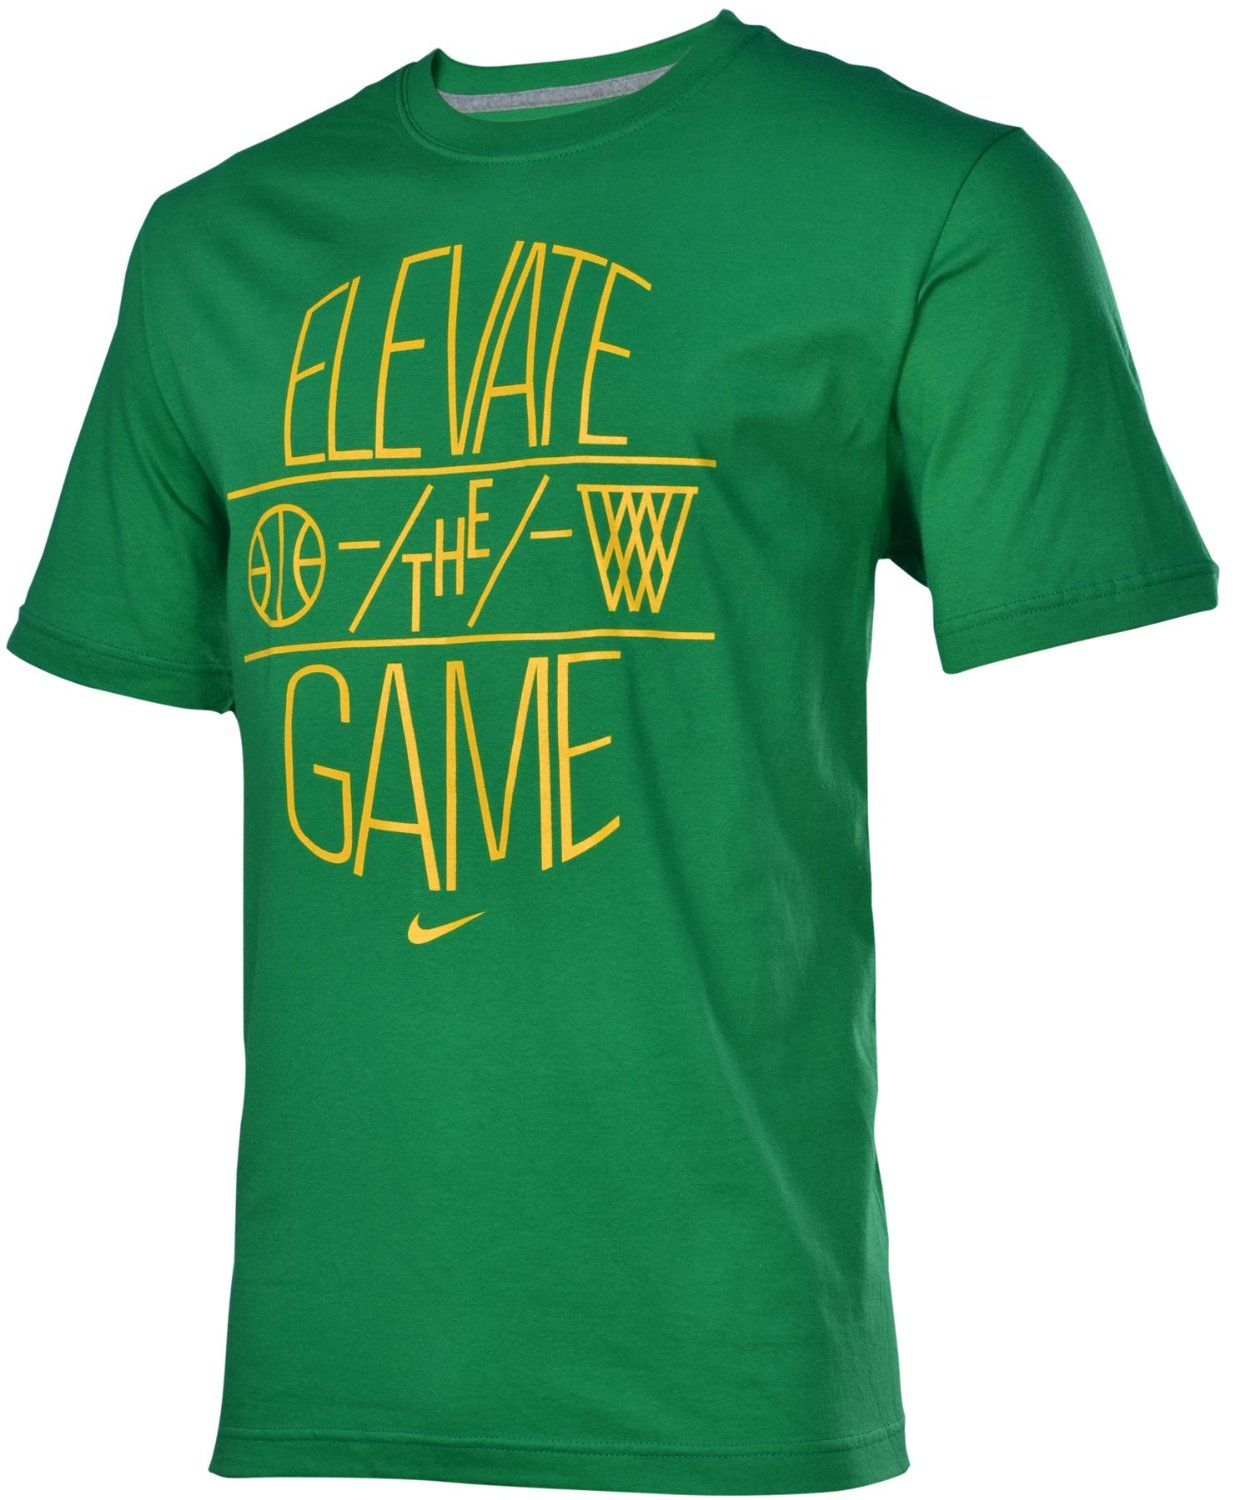 Elevate The Game Nike Basketball T Shirt Sports Tshirt Designs Basketball Shirt Designs Basketball Shirts